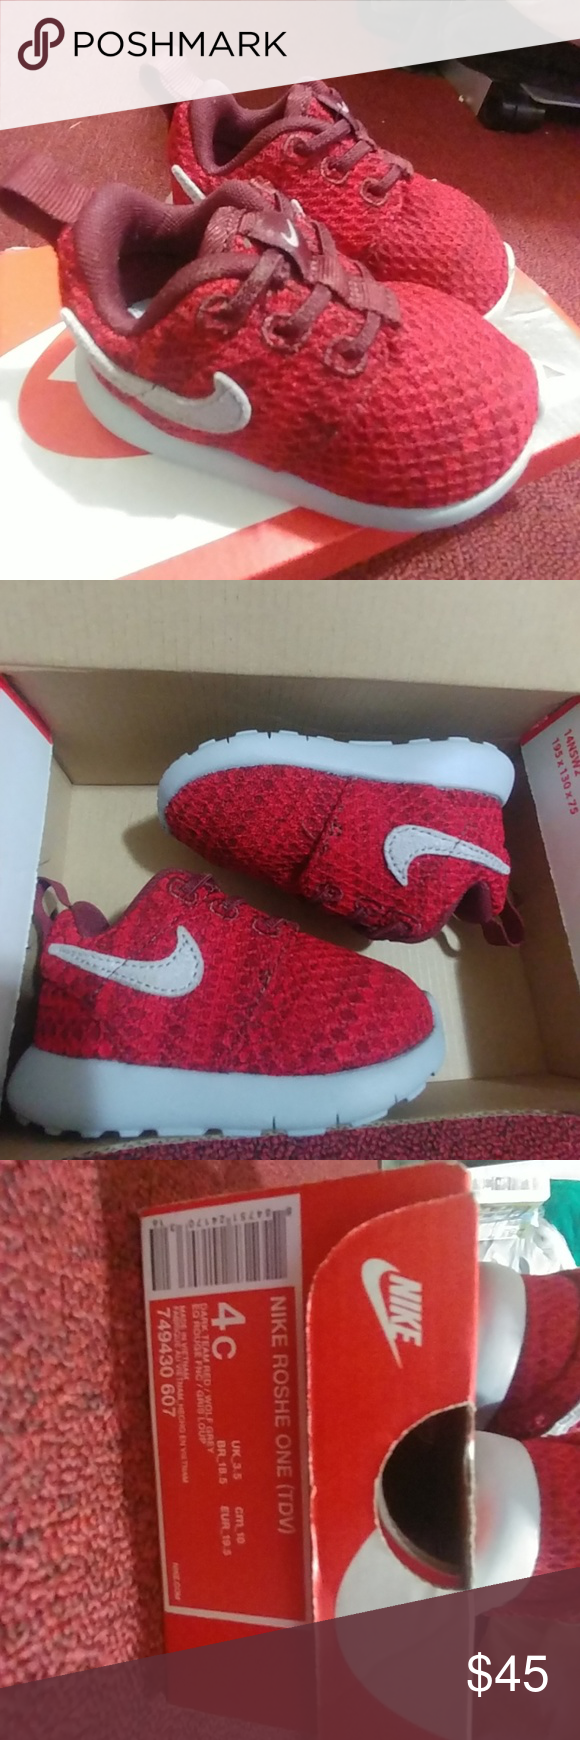 Toddler Red Nike Roshe One Here are the Nike Roshe One in red and grey.  They are size 4C for Toddler Infants. Only worn 4 times ever. Nike Shoes  Sneakers c2d7782be